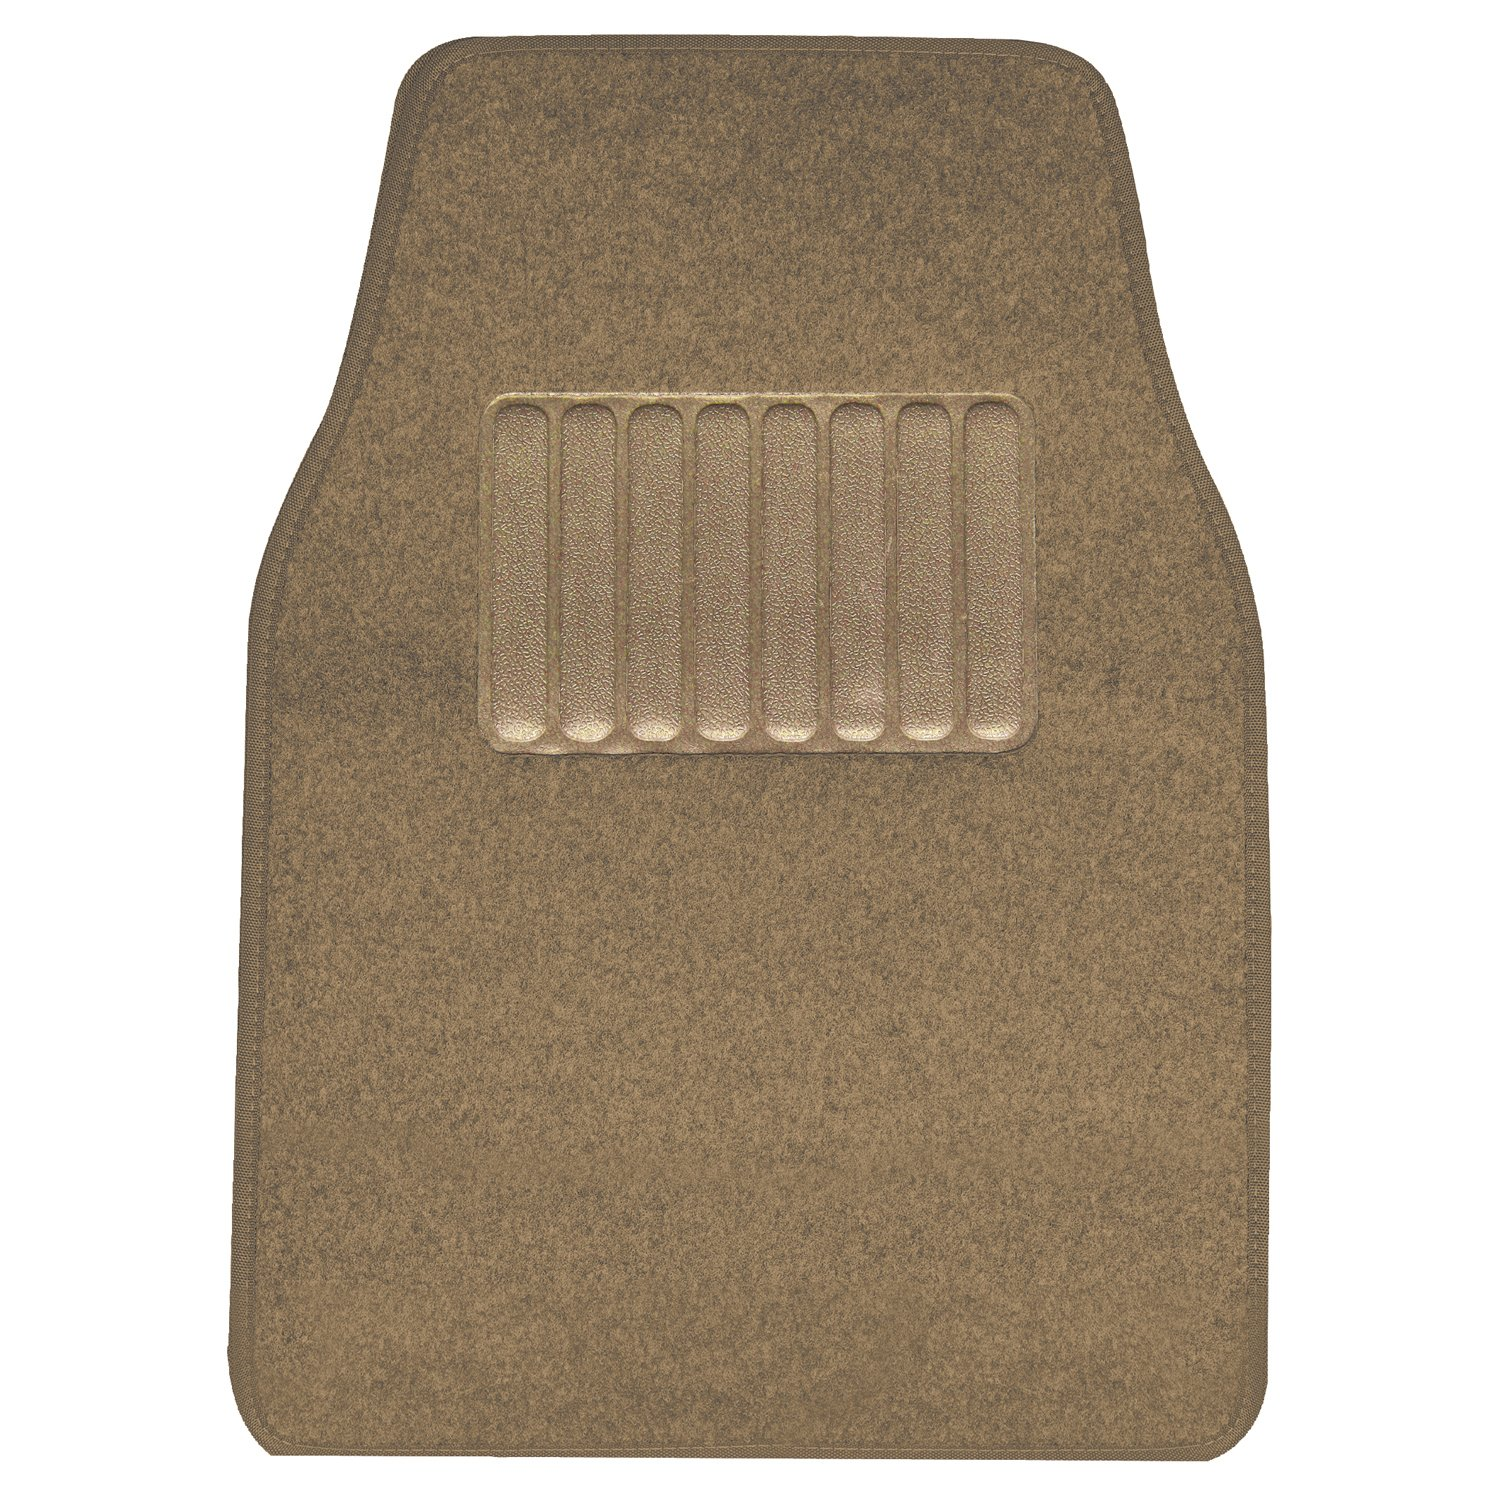 4 Piece Pilot Automotive FM-02T Tan Carpet Floor Mat with Rubber Heel Pad,